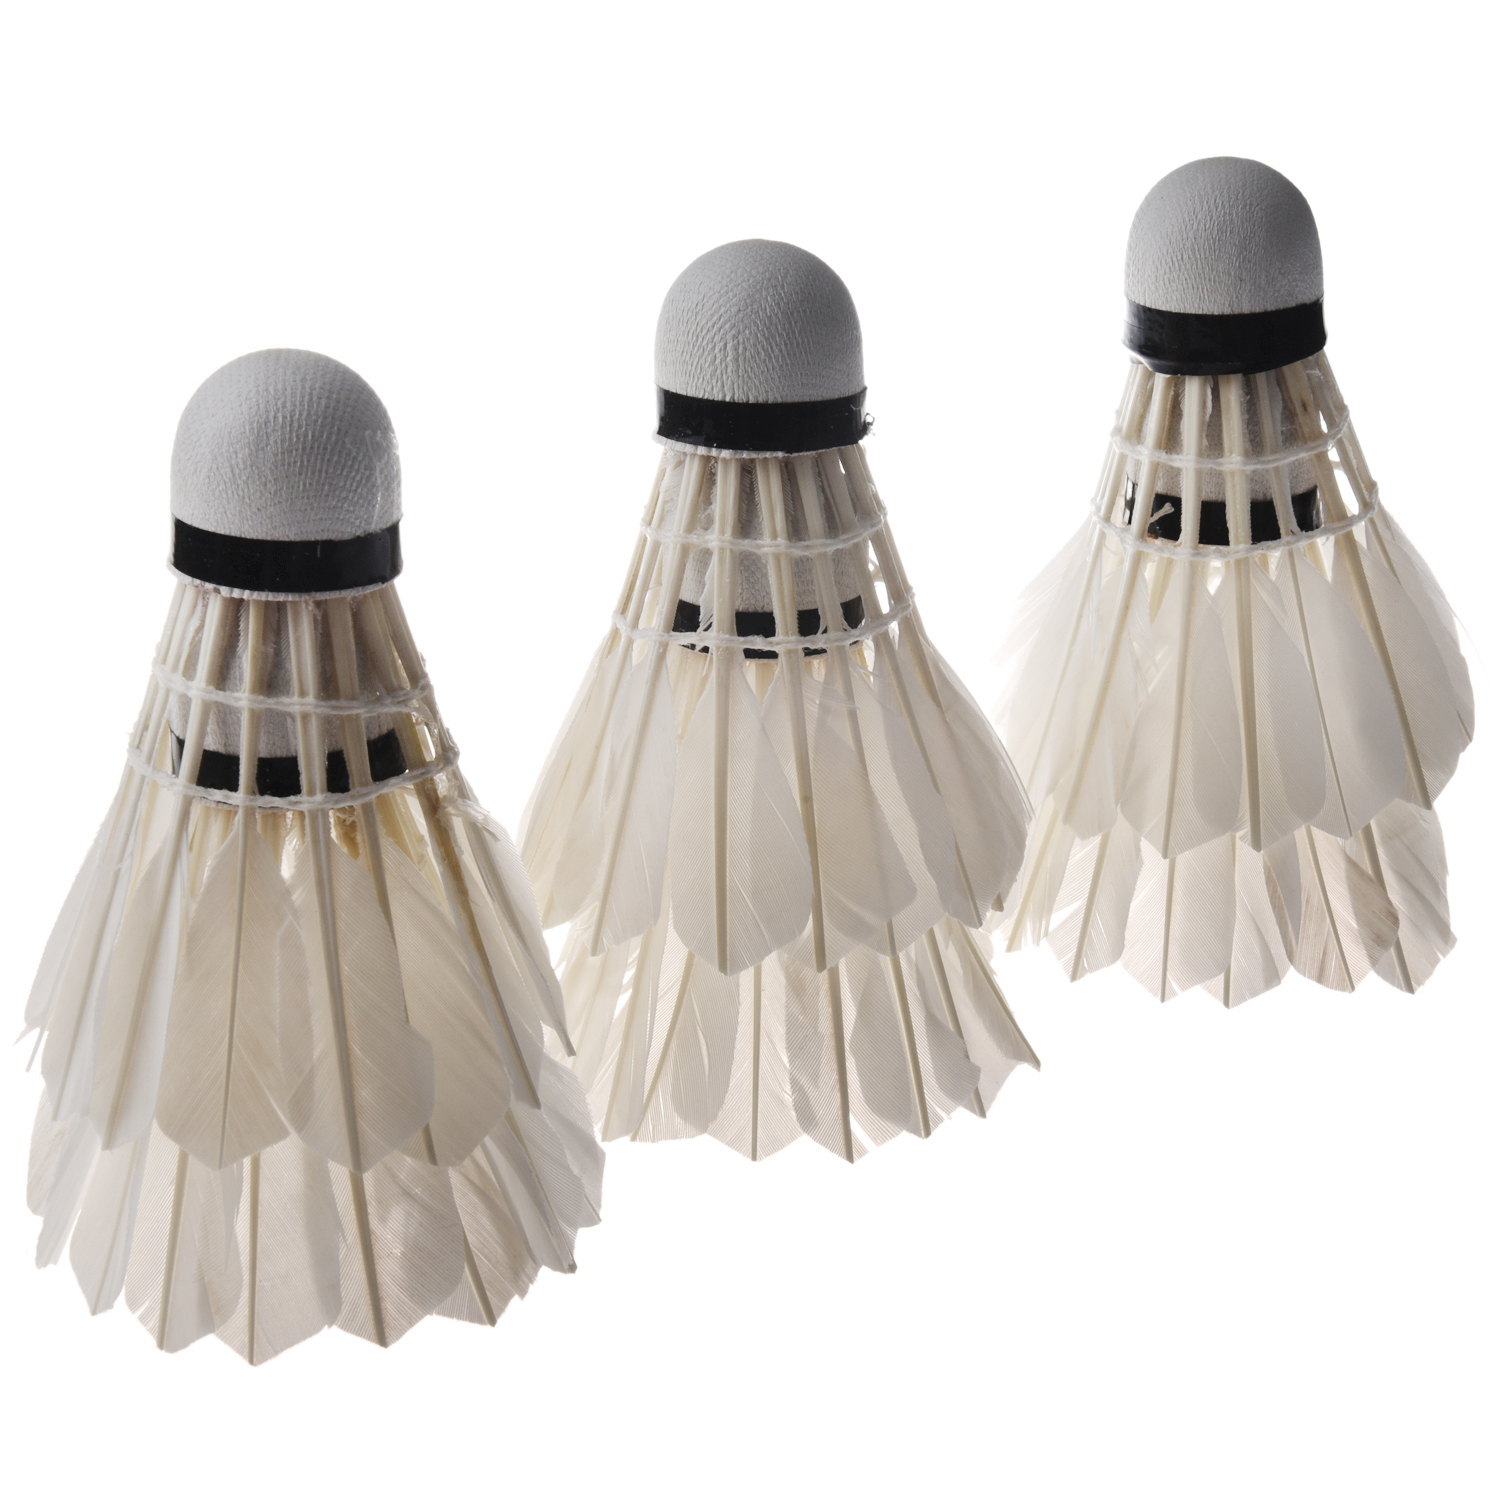 6PCS White Feather Shuttlecocks Badminton